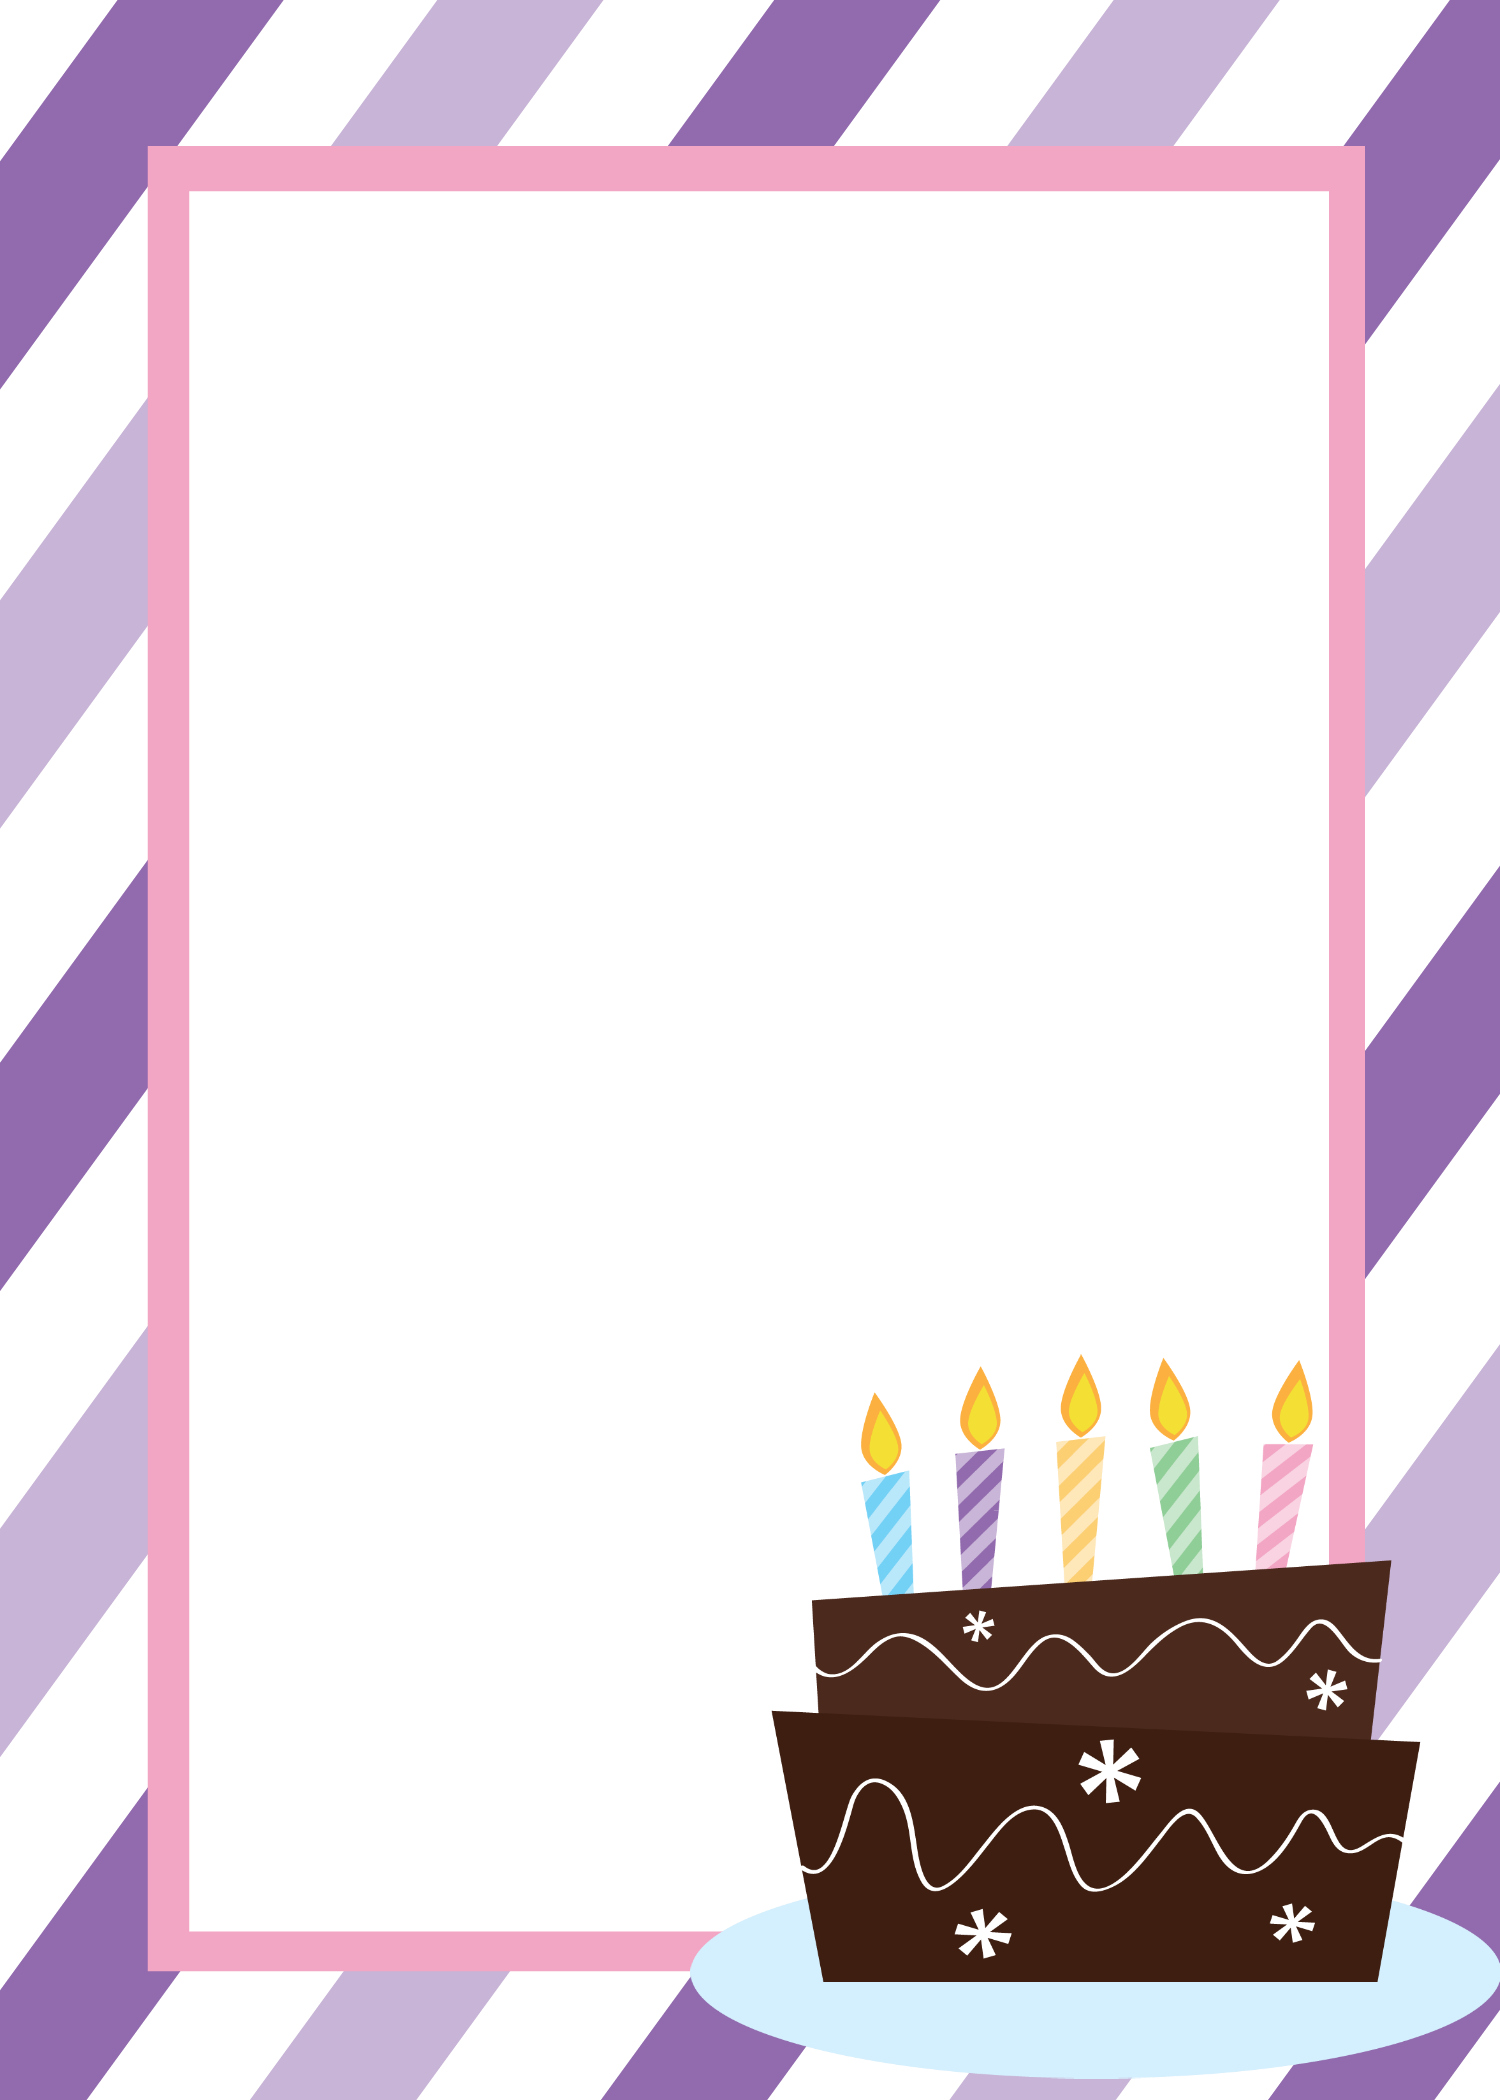 printable birthday invitation templates, Birthday invitations